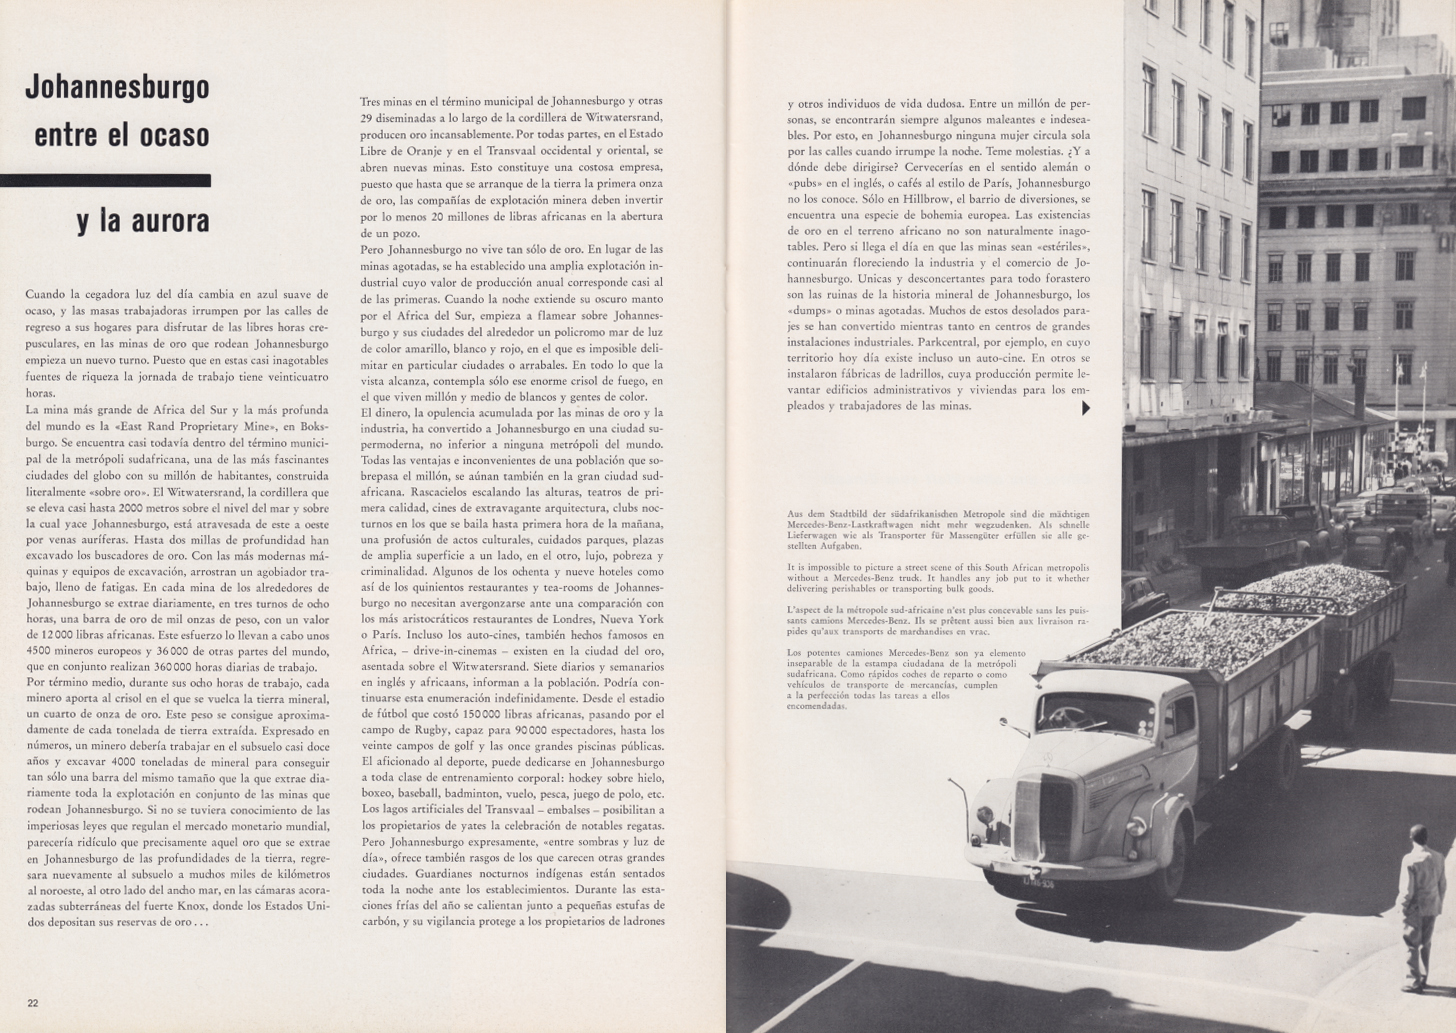 (REVISTA): Periódico In aller welt n.º 34 - Mercedes-Benz no mundo - 1959 - multilingue 012